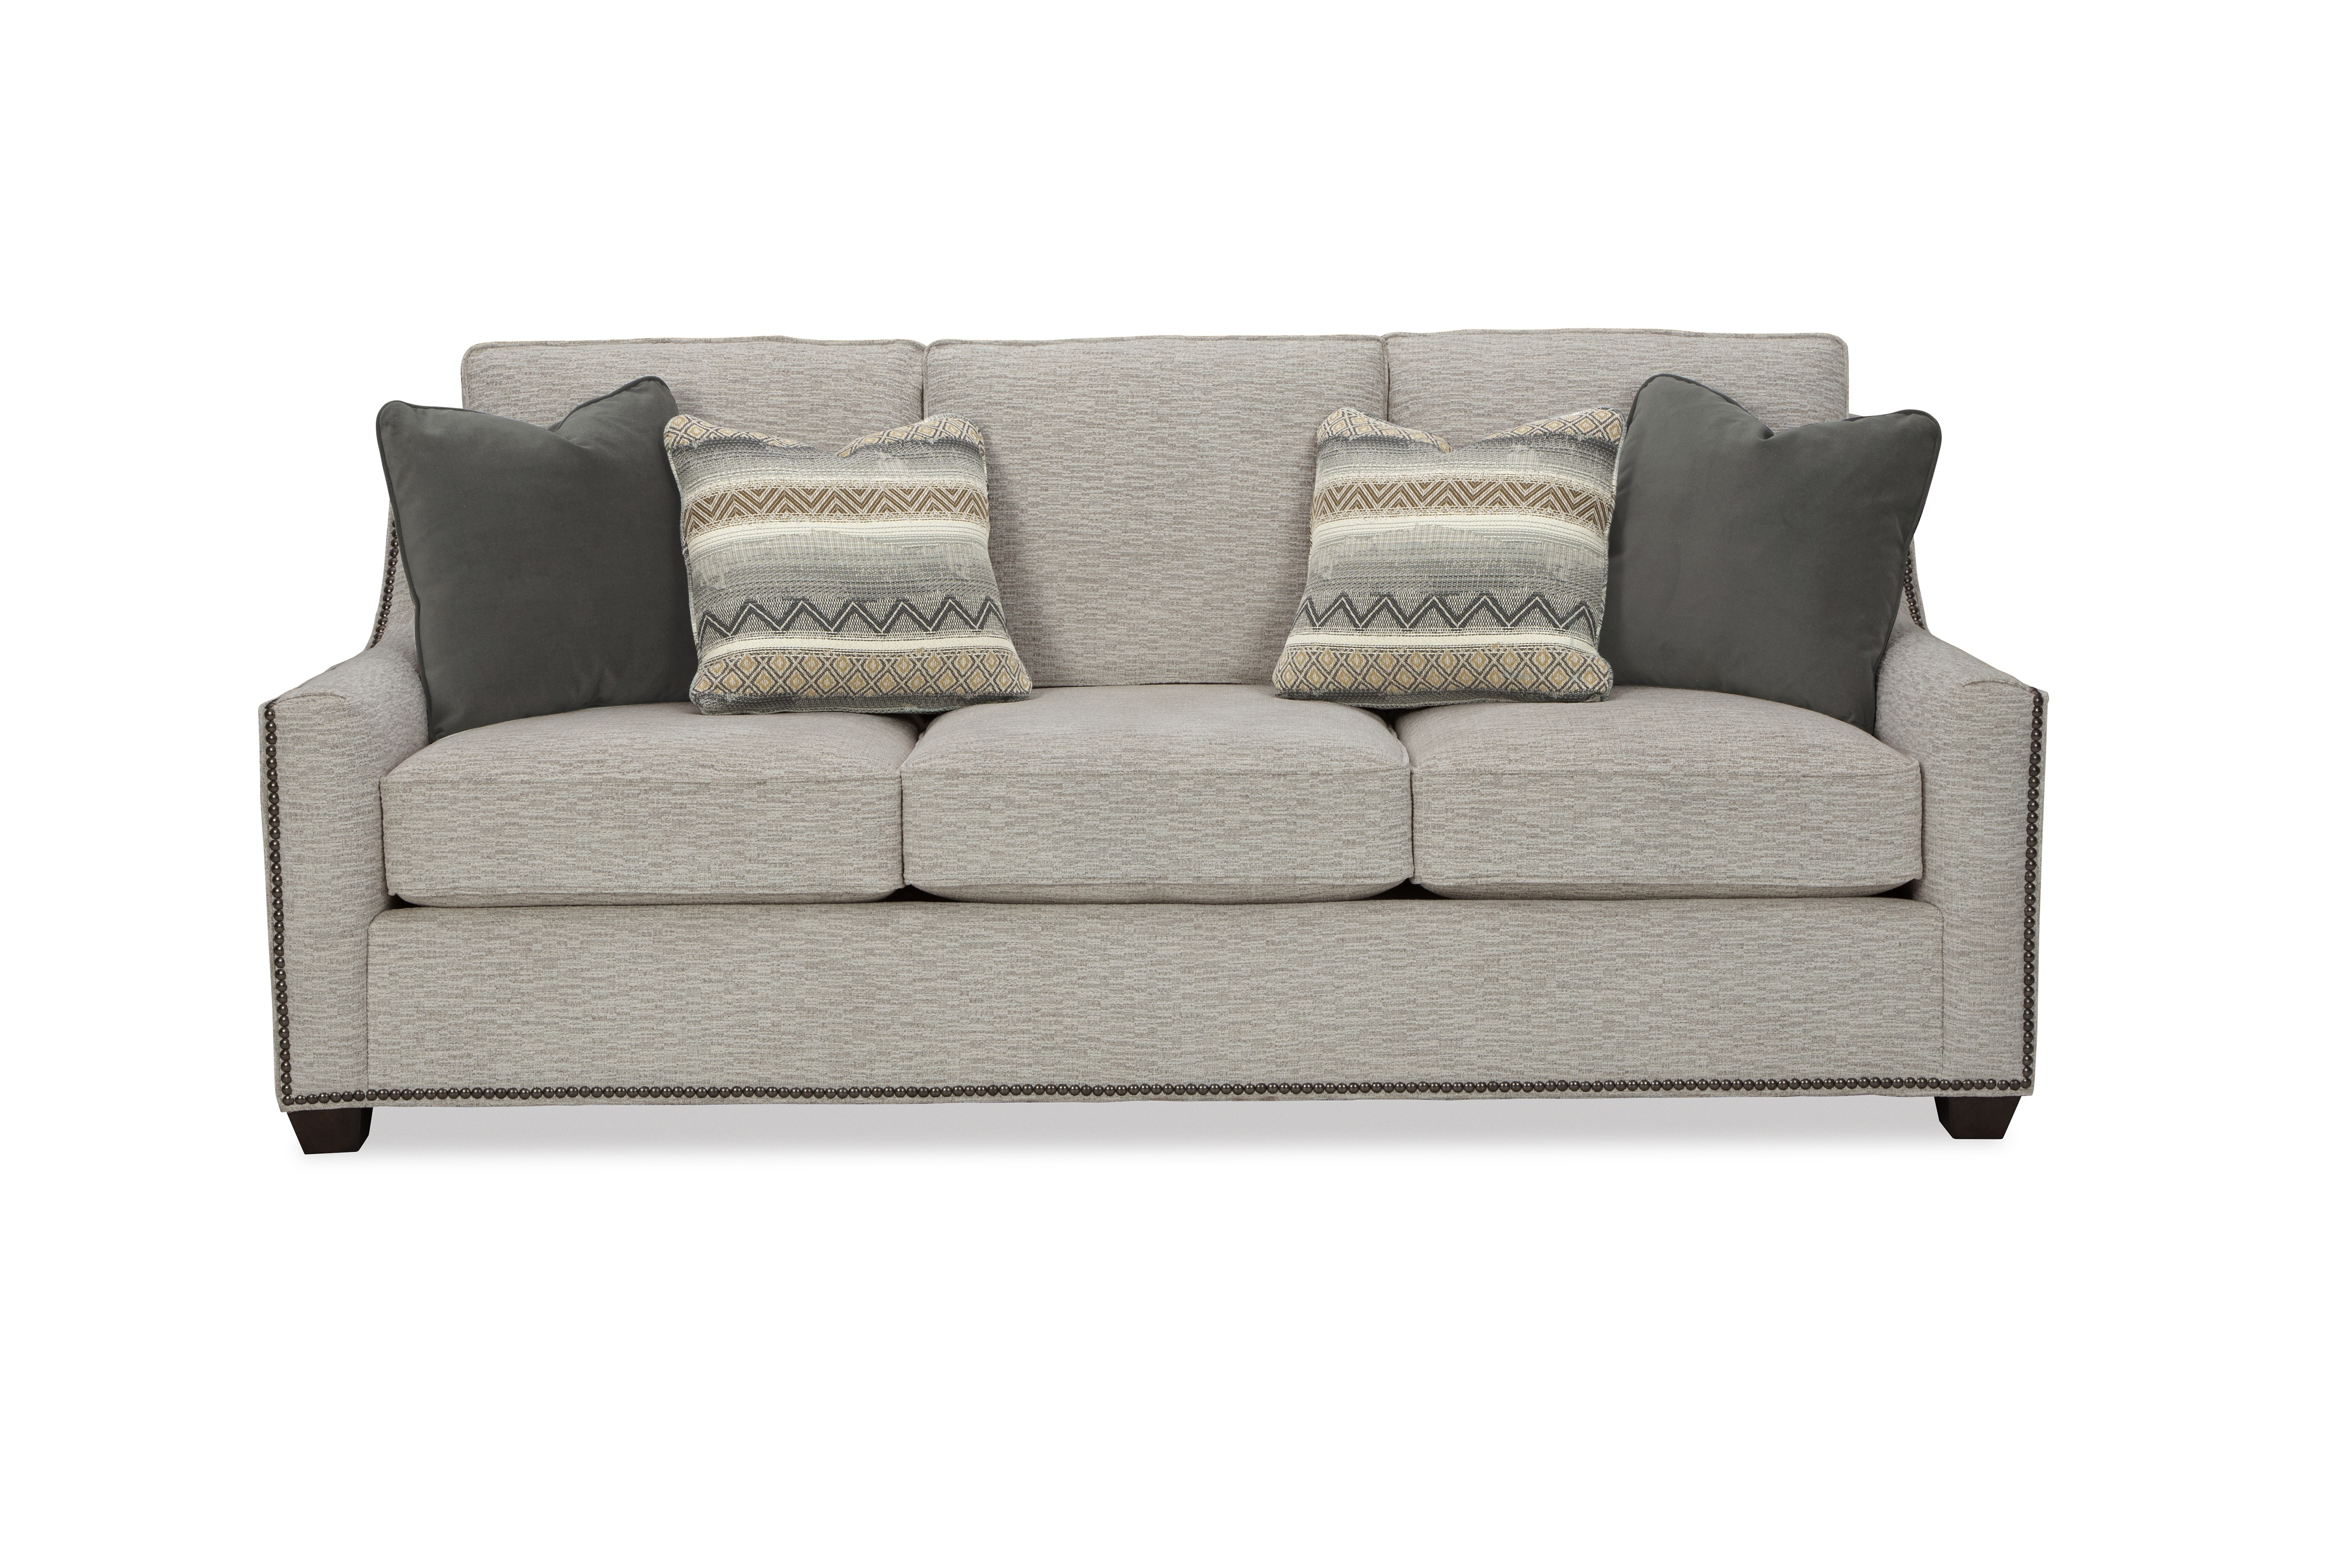 702950 Sofa by Craftmaster at Esprit Decor Home Furnishings